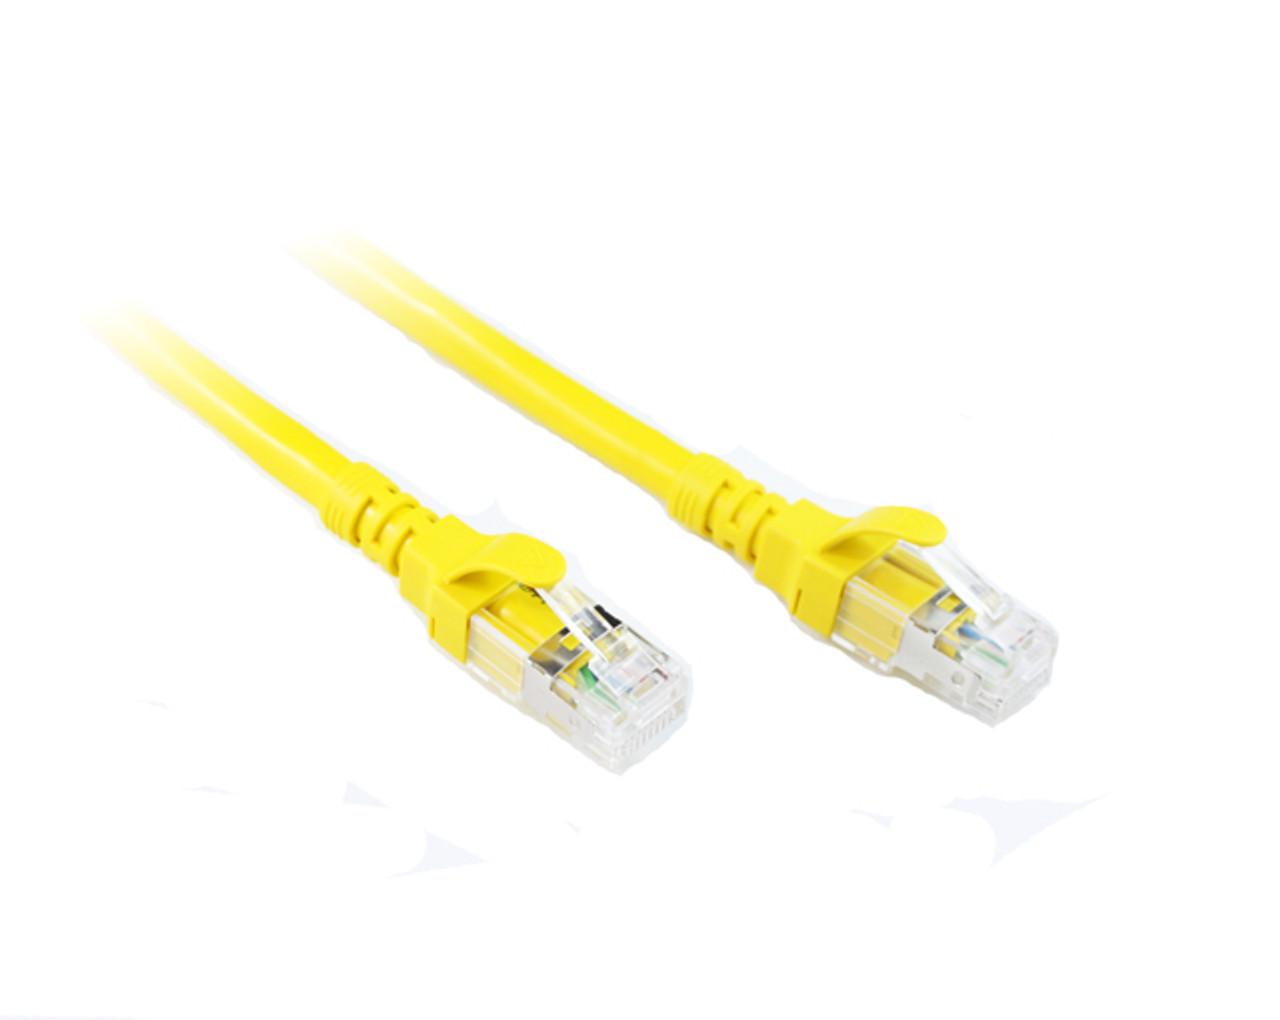 Product image for 0.3M Yellow CAT 6A 10GB SSTP/SFTP Cable | CX Computer Superstore